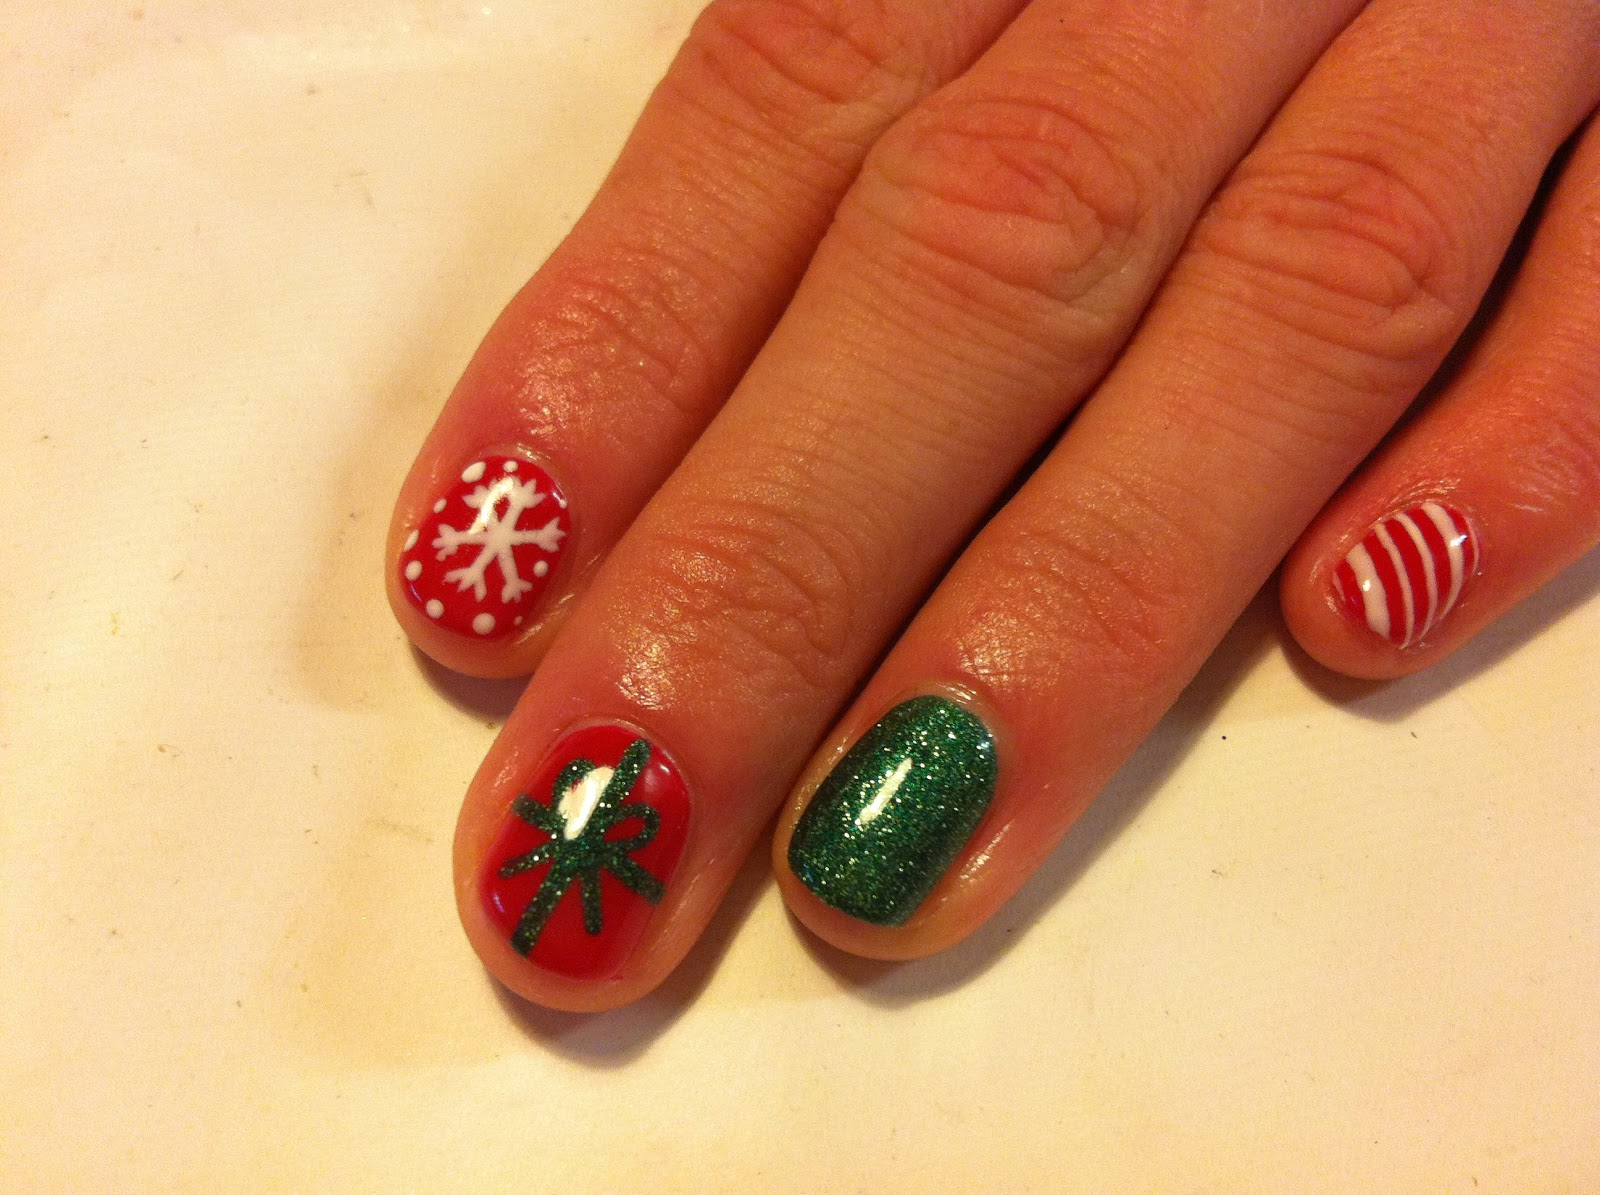 and Polish up!: CND Shellac Christmas Nail Art - #2 Red, Green & White